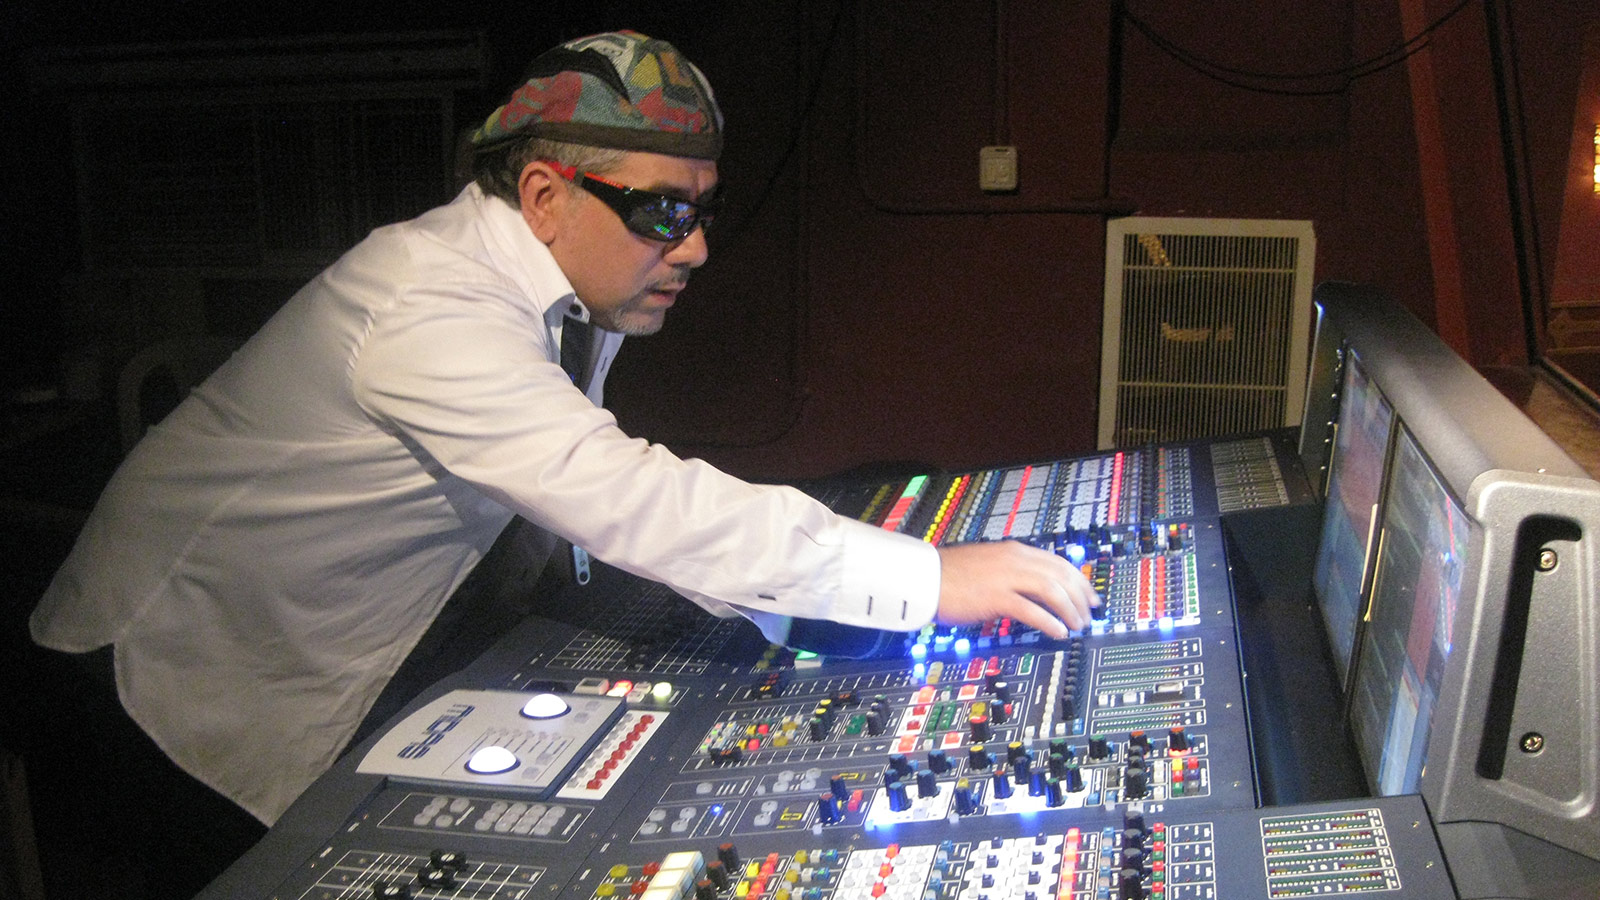 Tony Khoury, head audio engineer